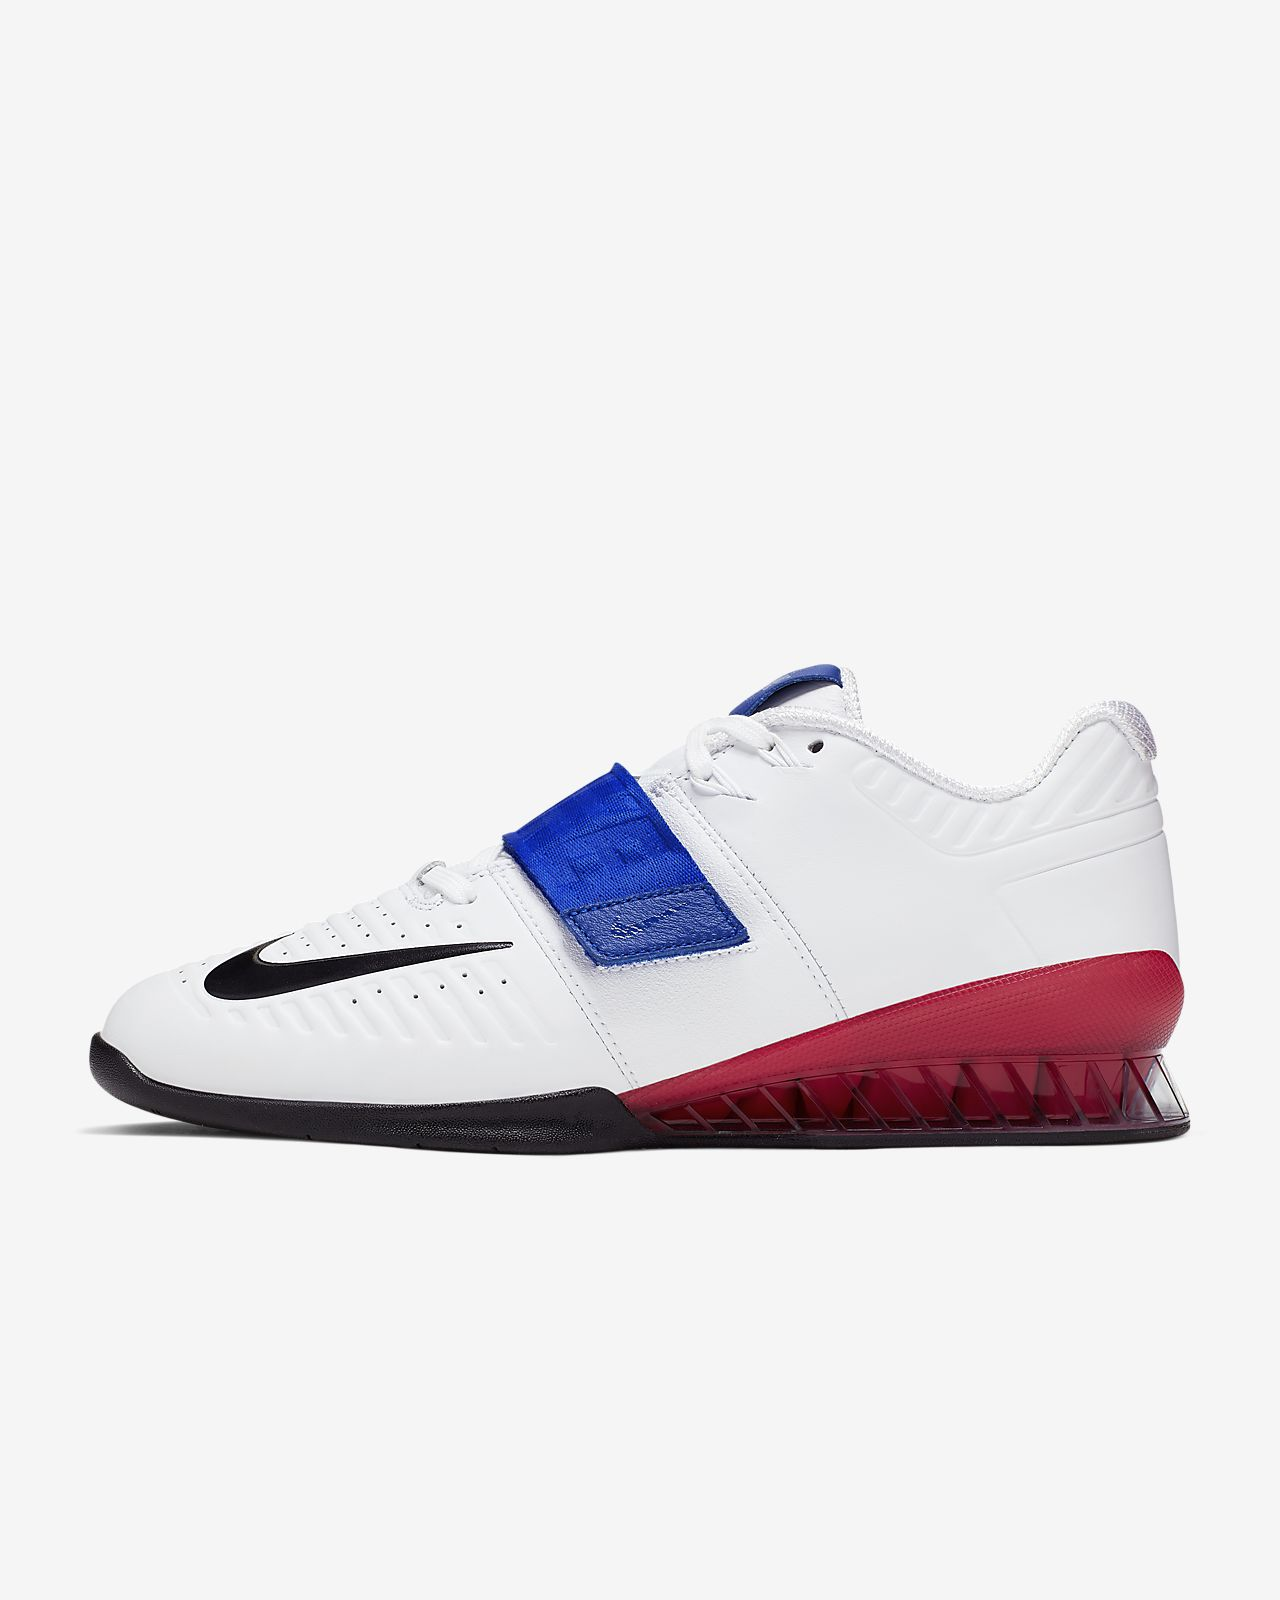 Nike Romaleos 3 XD Training Shoe